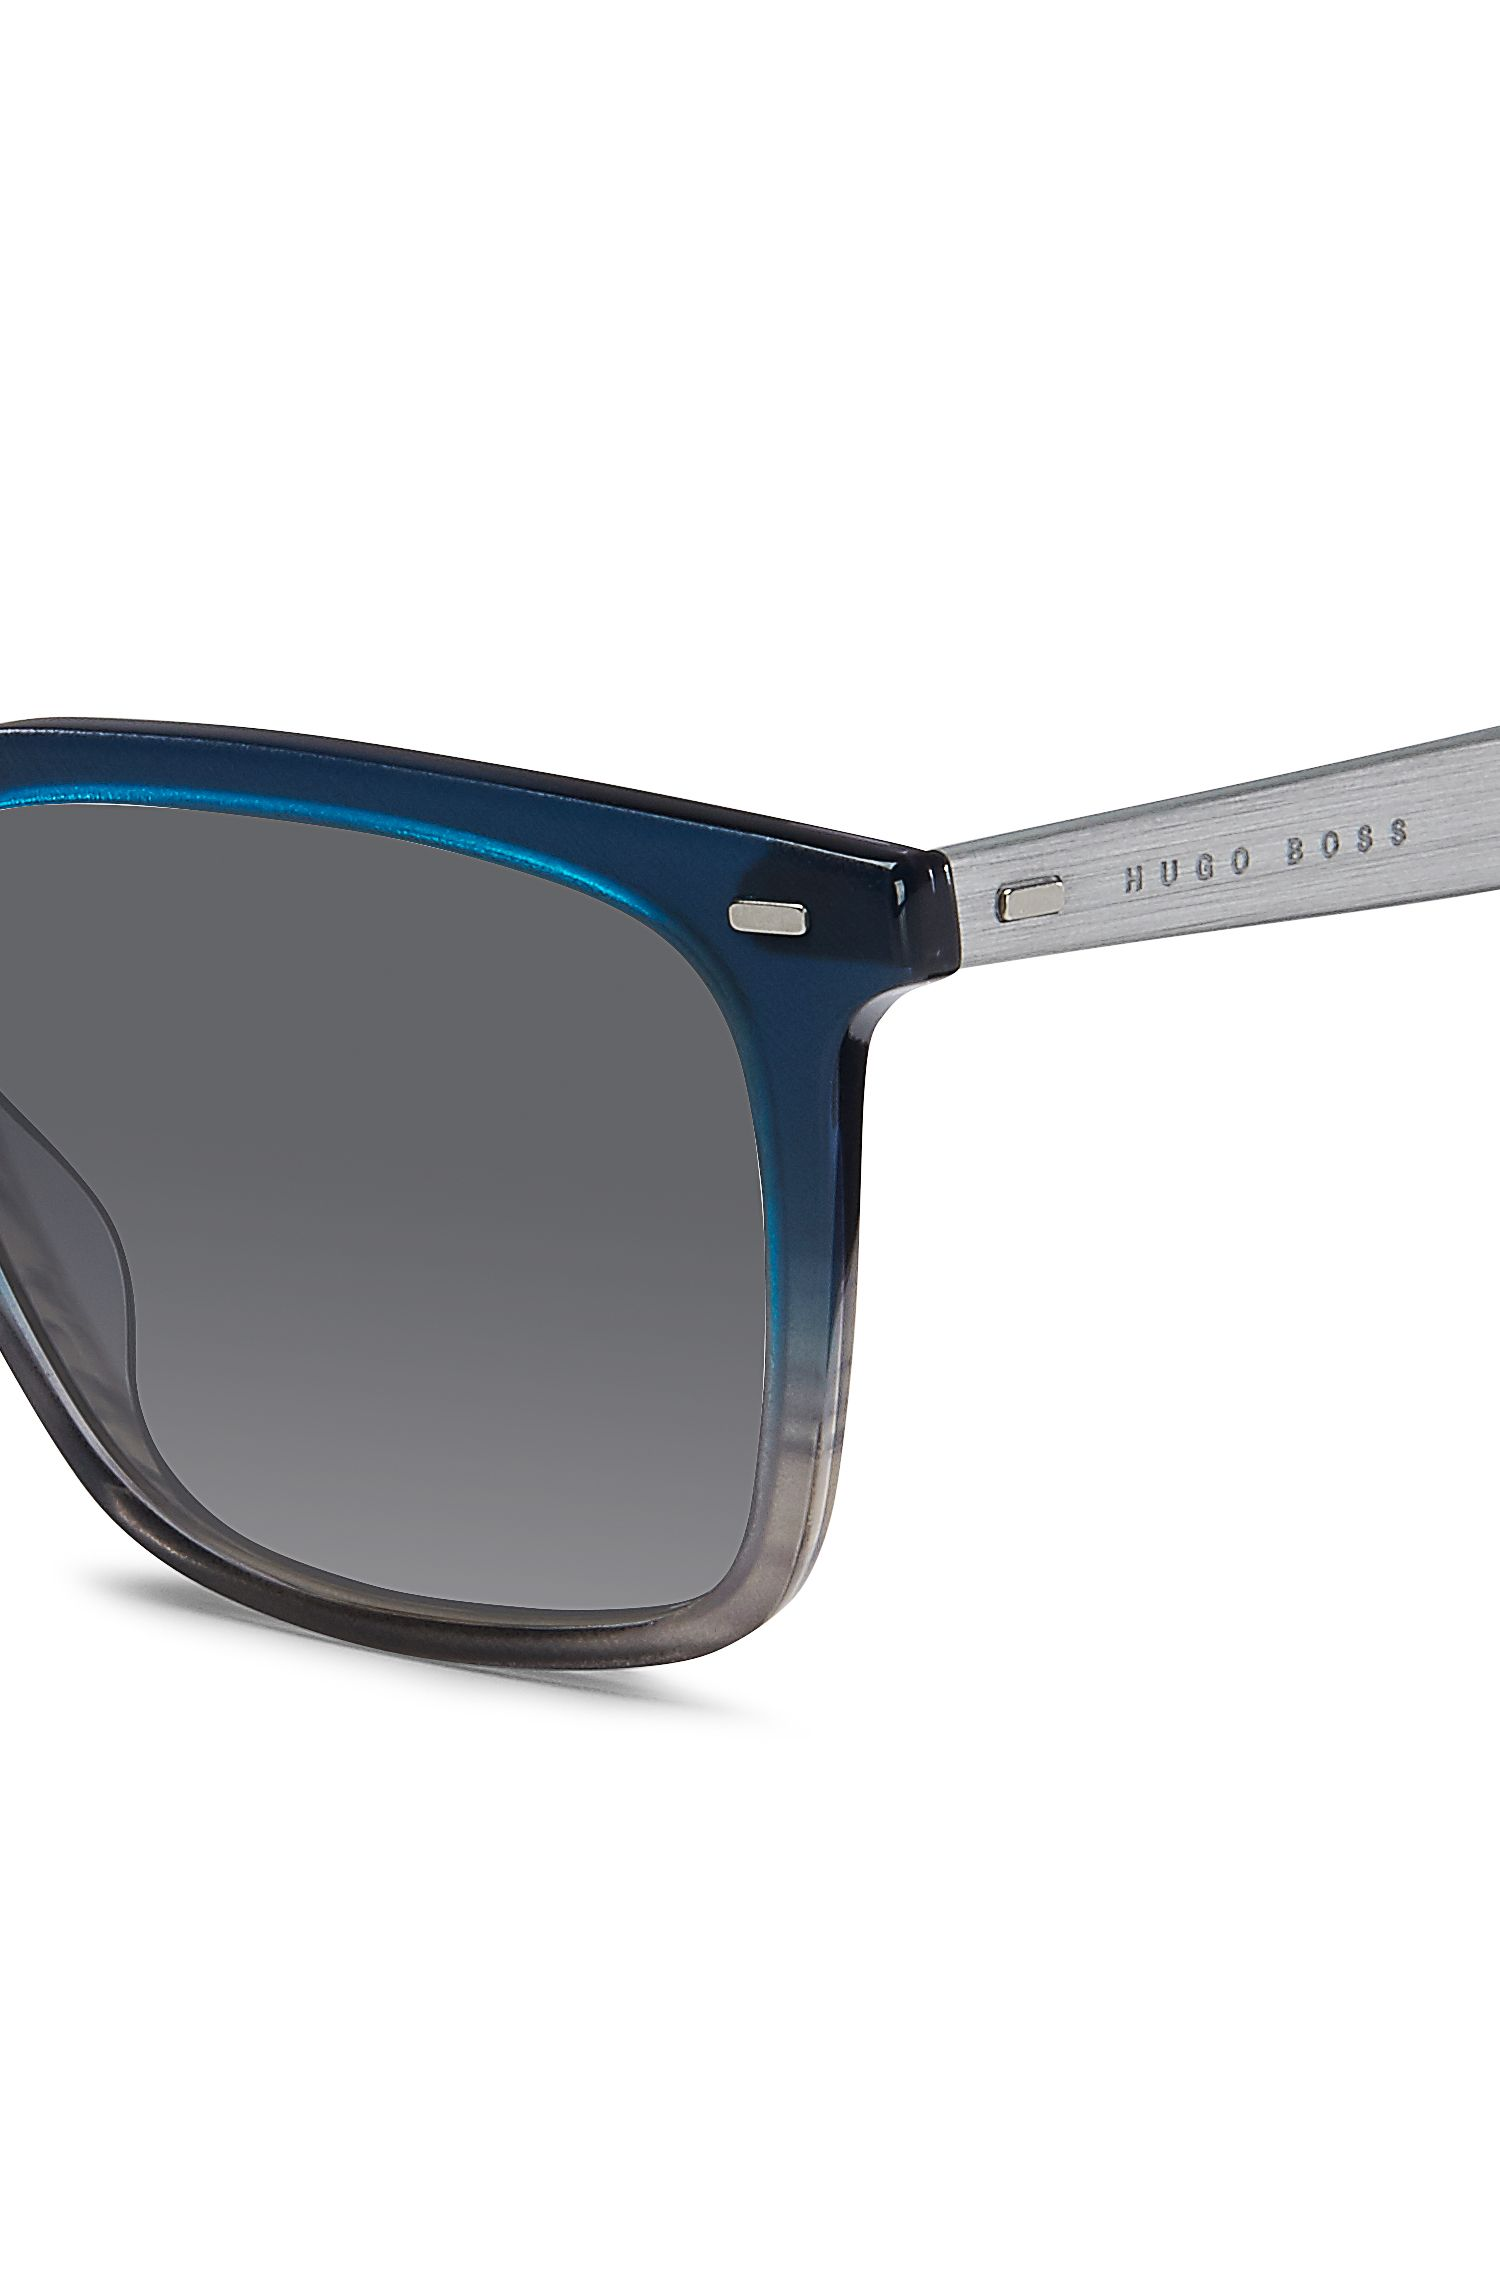 Grey Acetate Rectangular Sunglasses | BOSS 0883S